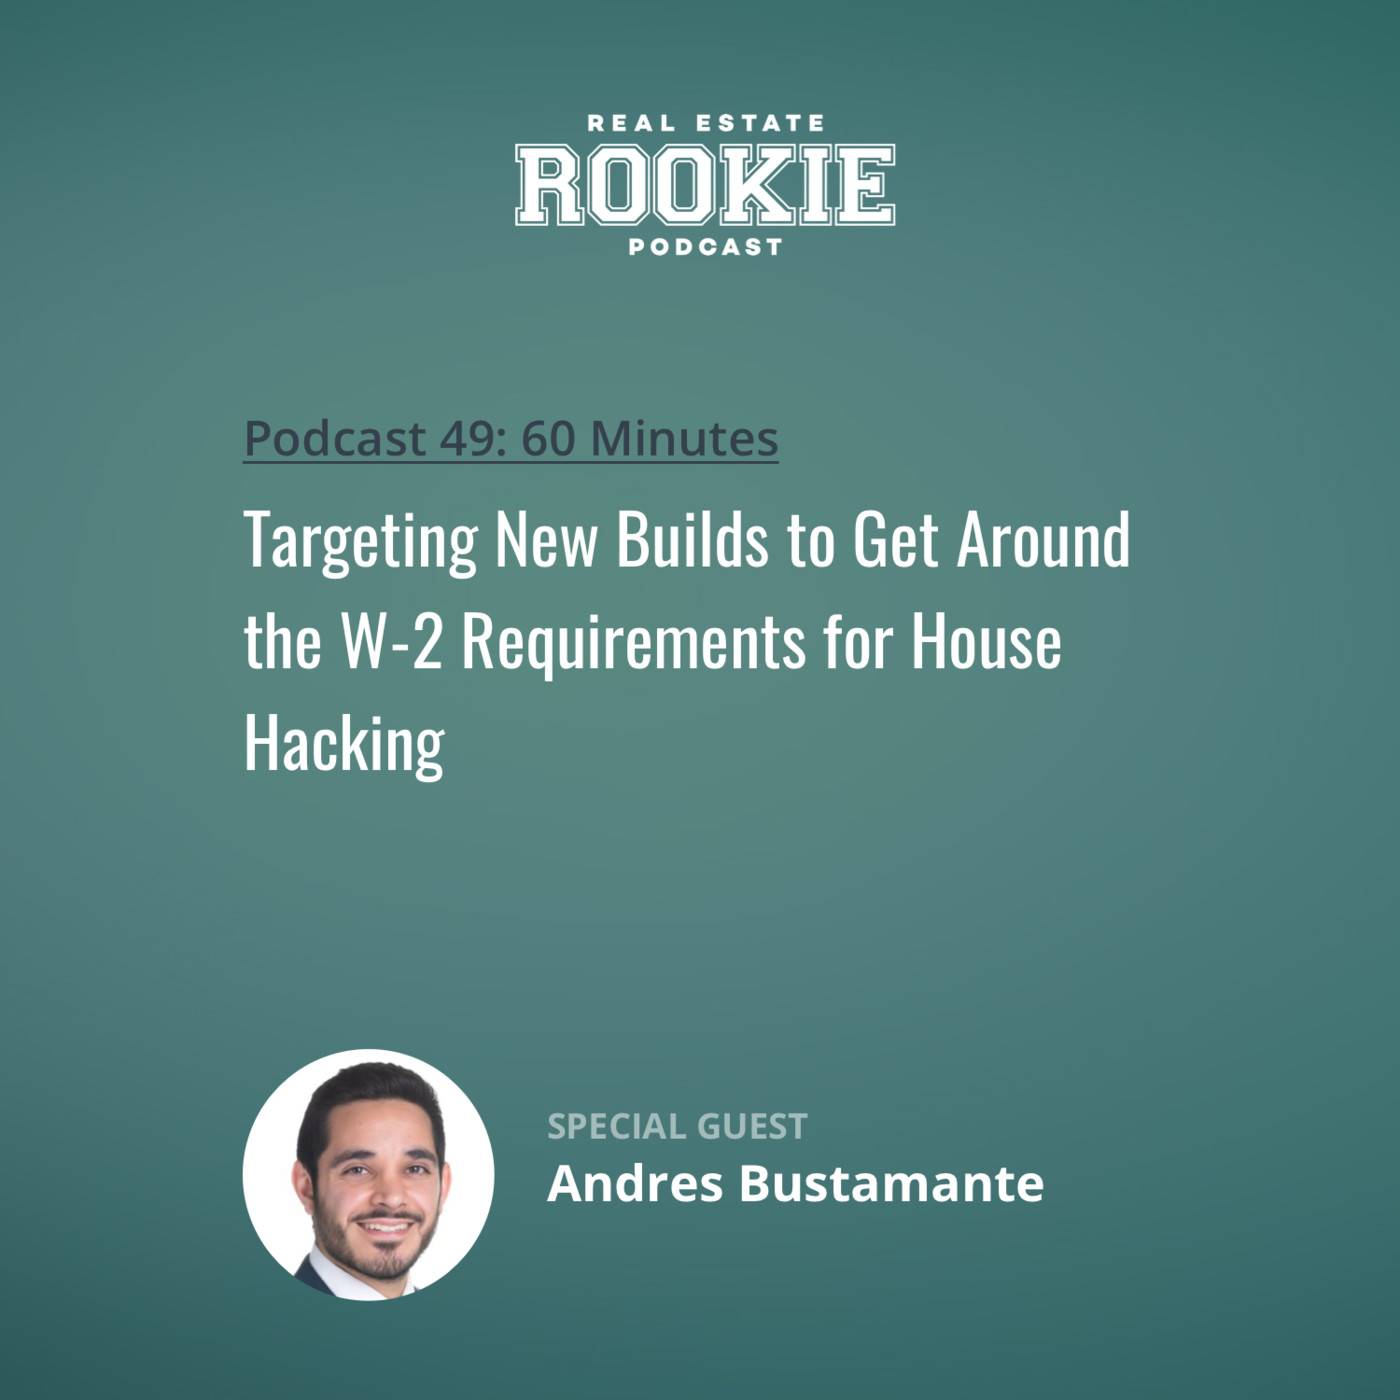 Targeting New Builds to Get Around the W-2 Requirements for House Hacking with Andres Bustamante